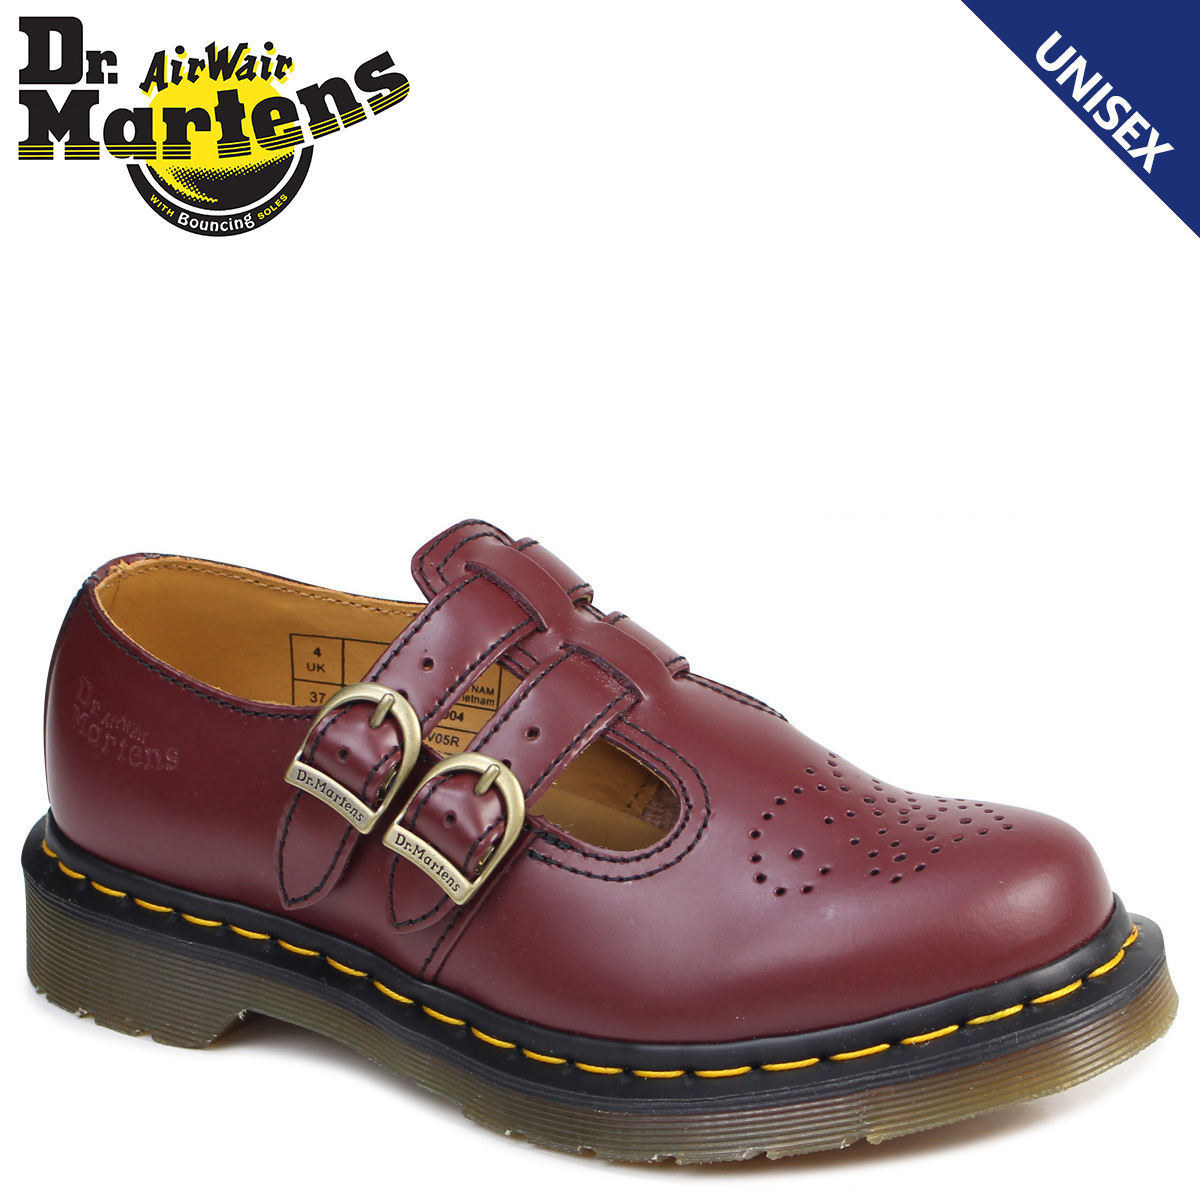 Doctor Martin Mary Jane Lady's Dr.Martens shoes CORE 8065 MARY JANE R20159600 burgundy [8/2 Shinnyu load]